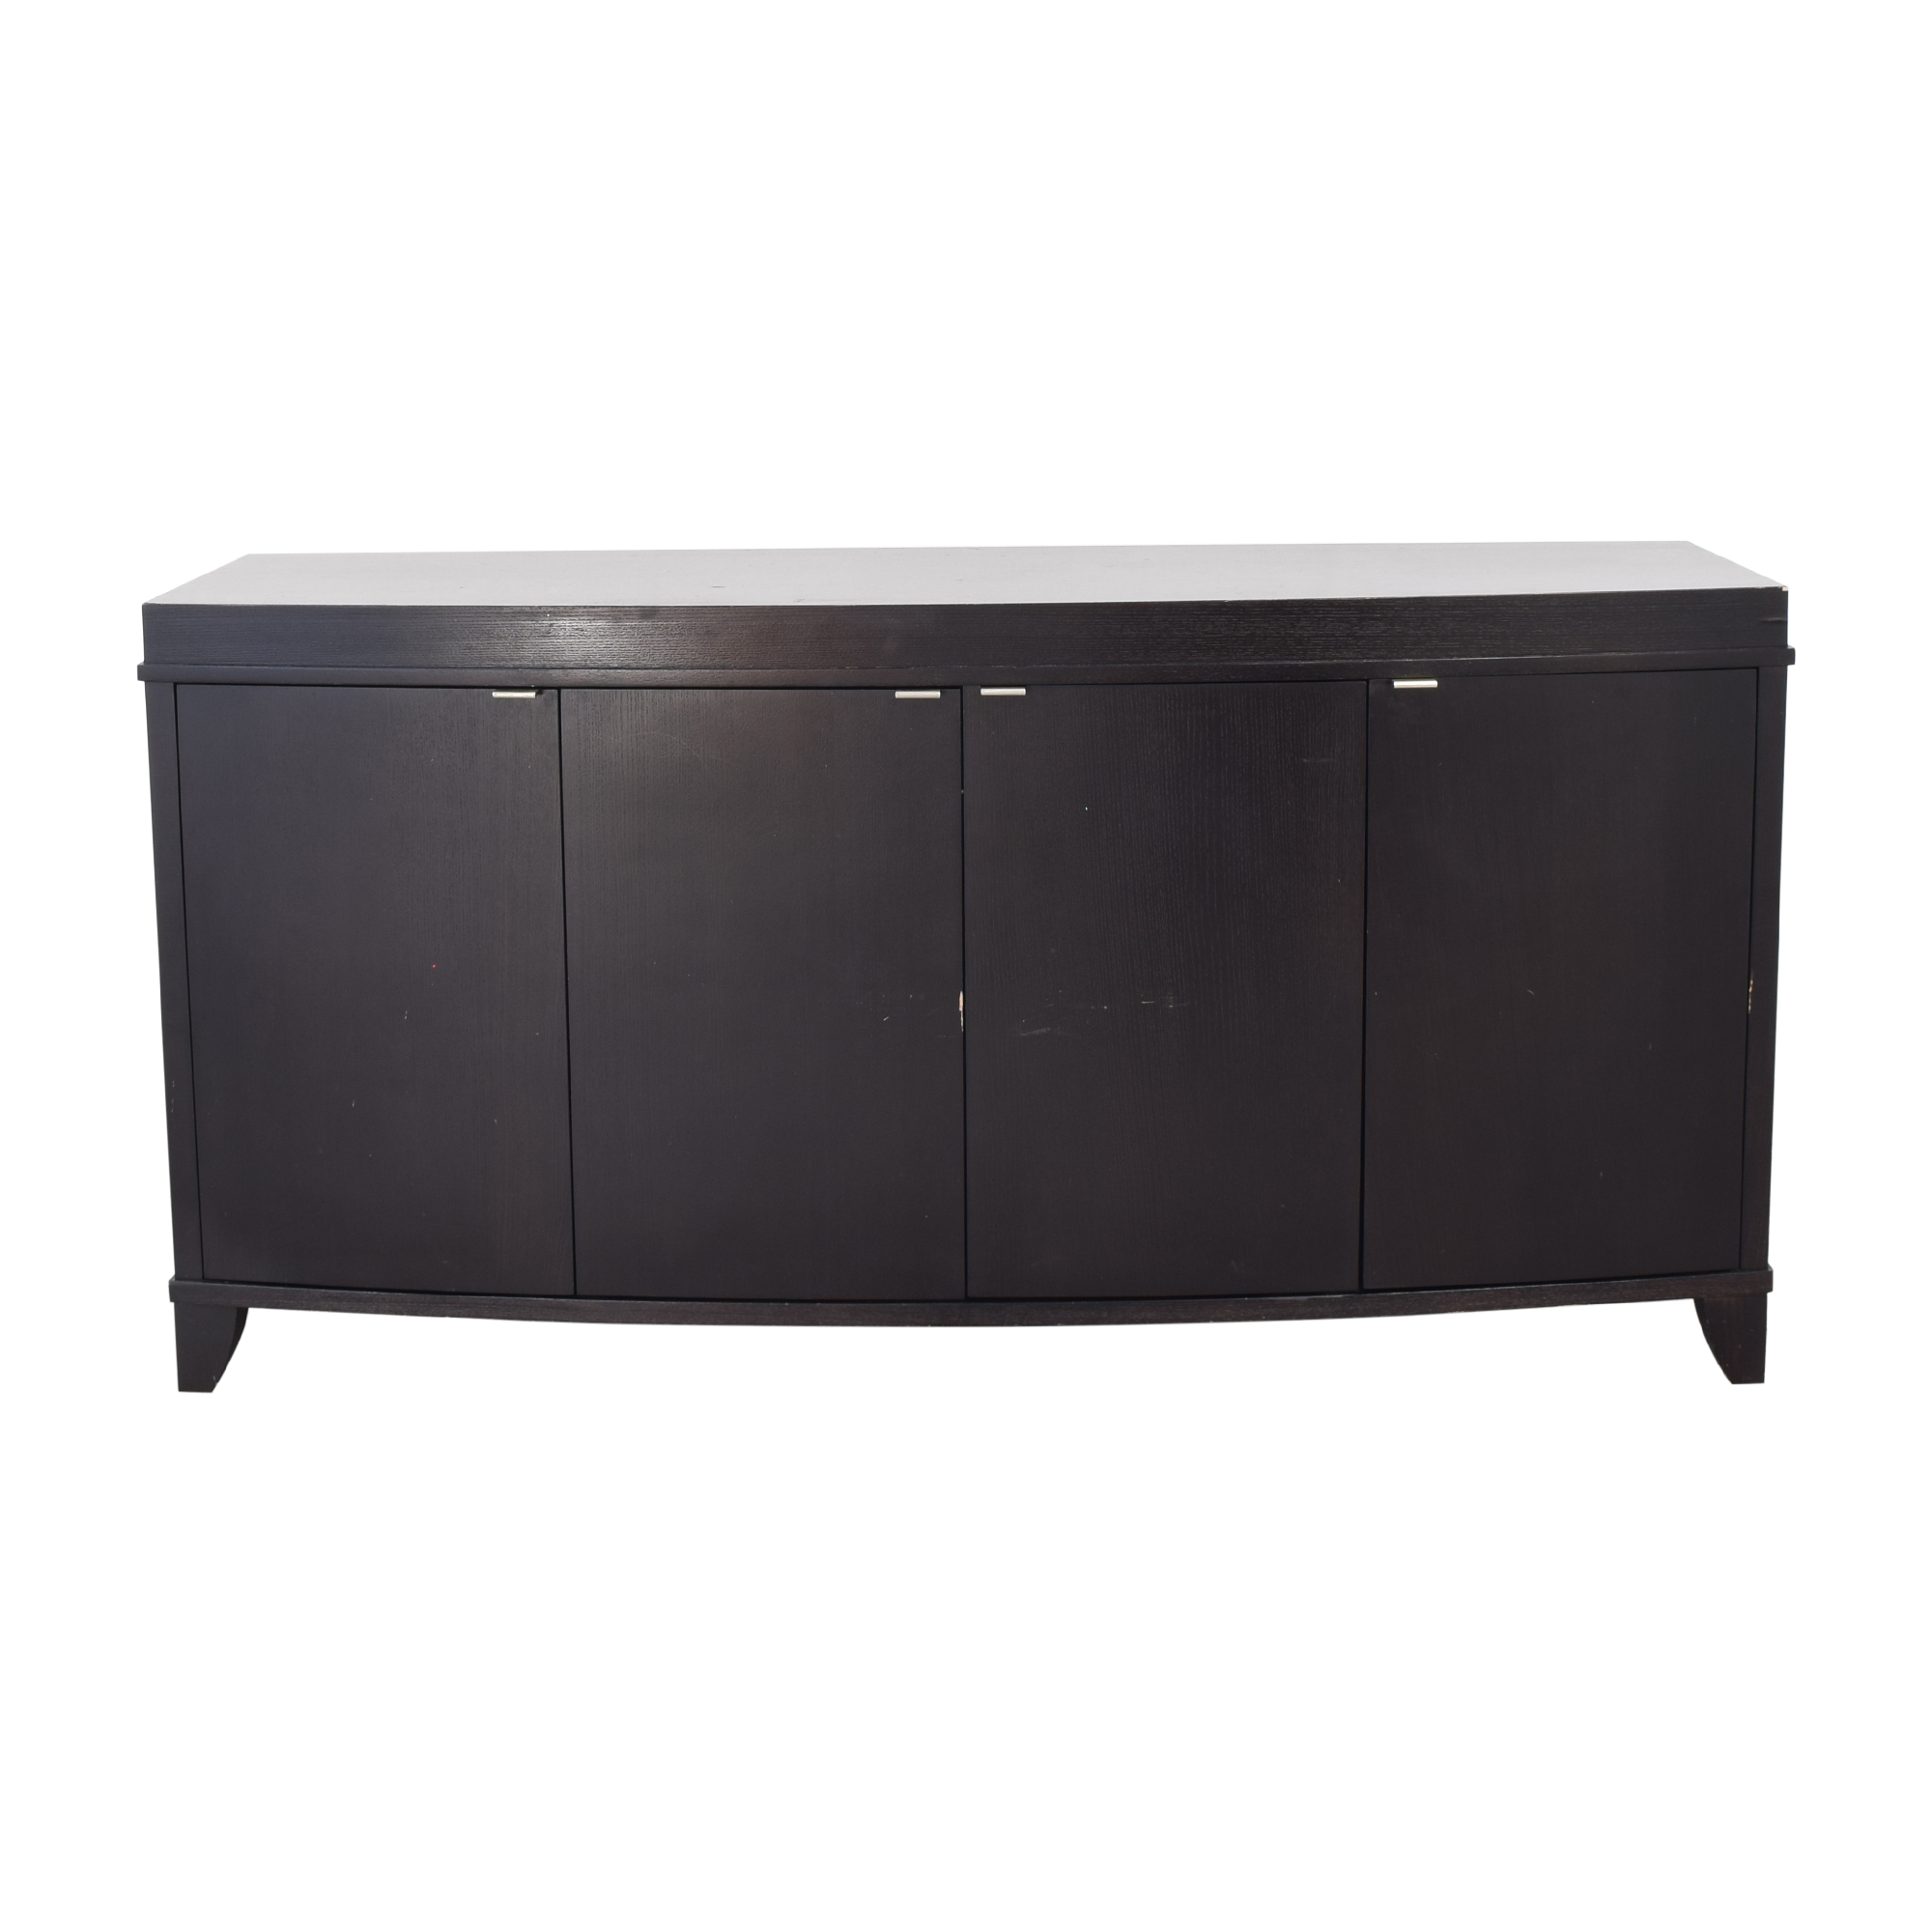 Crate & Barrel Sideboard sale